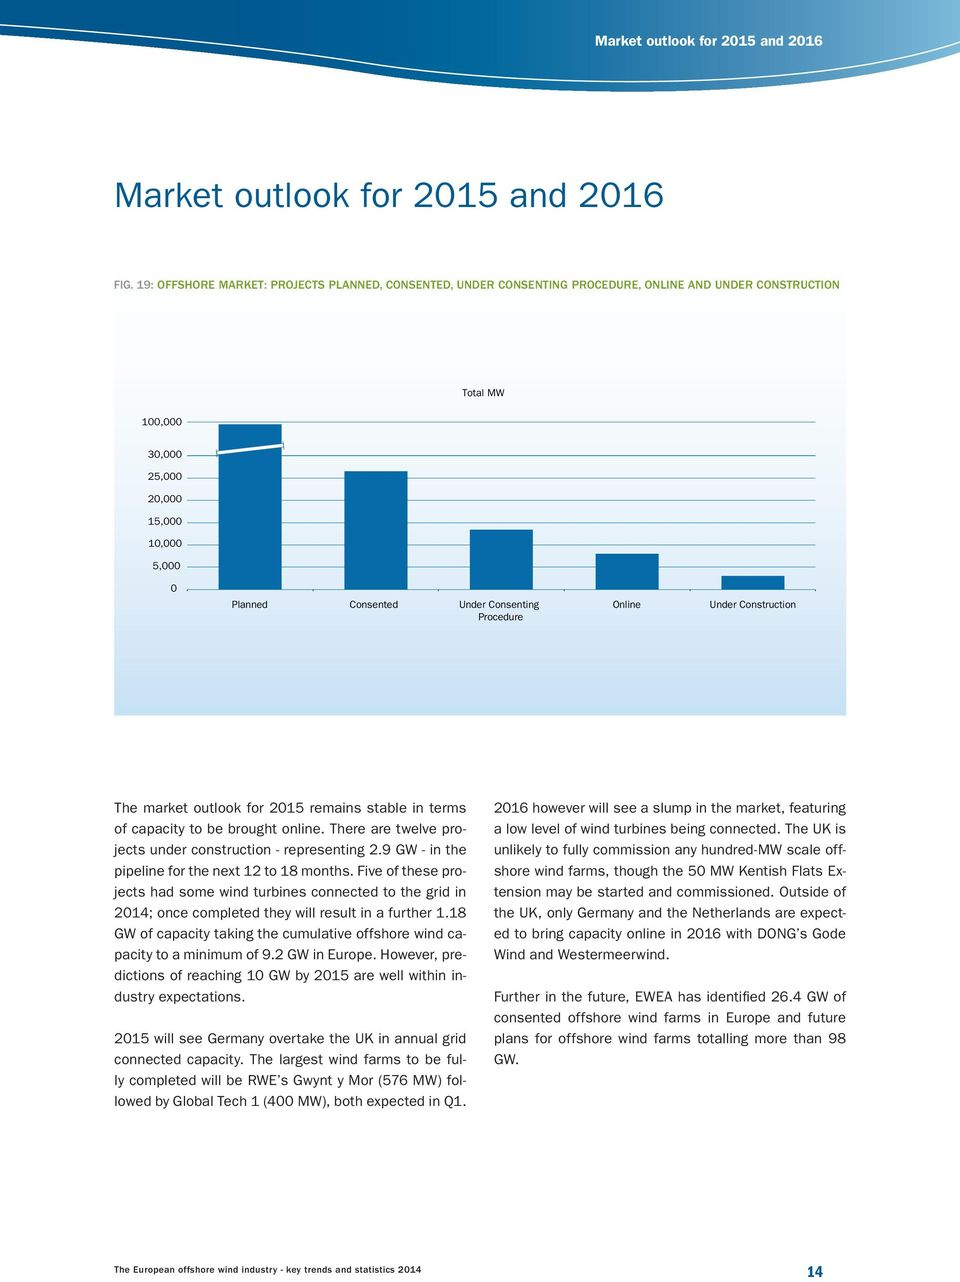 Consenting Procedure Online Under Construction The market outlook for 2015 remains stable in terms of capacity to be brought online. There are twelve projects under construction - representing 2.